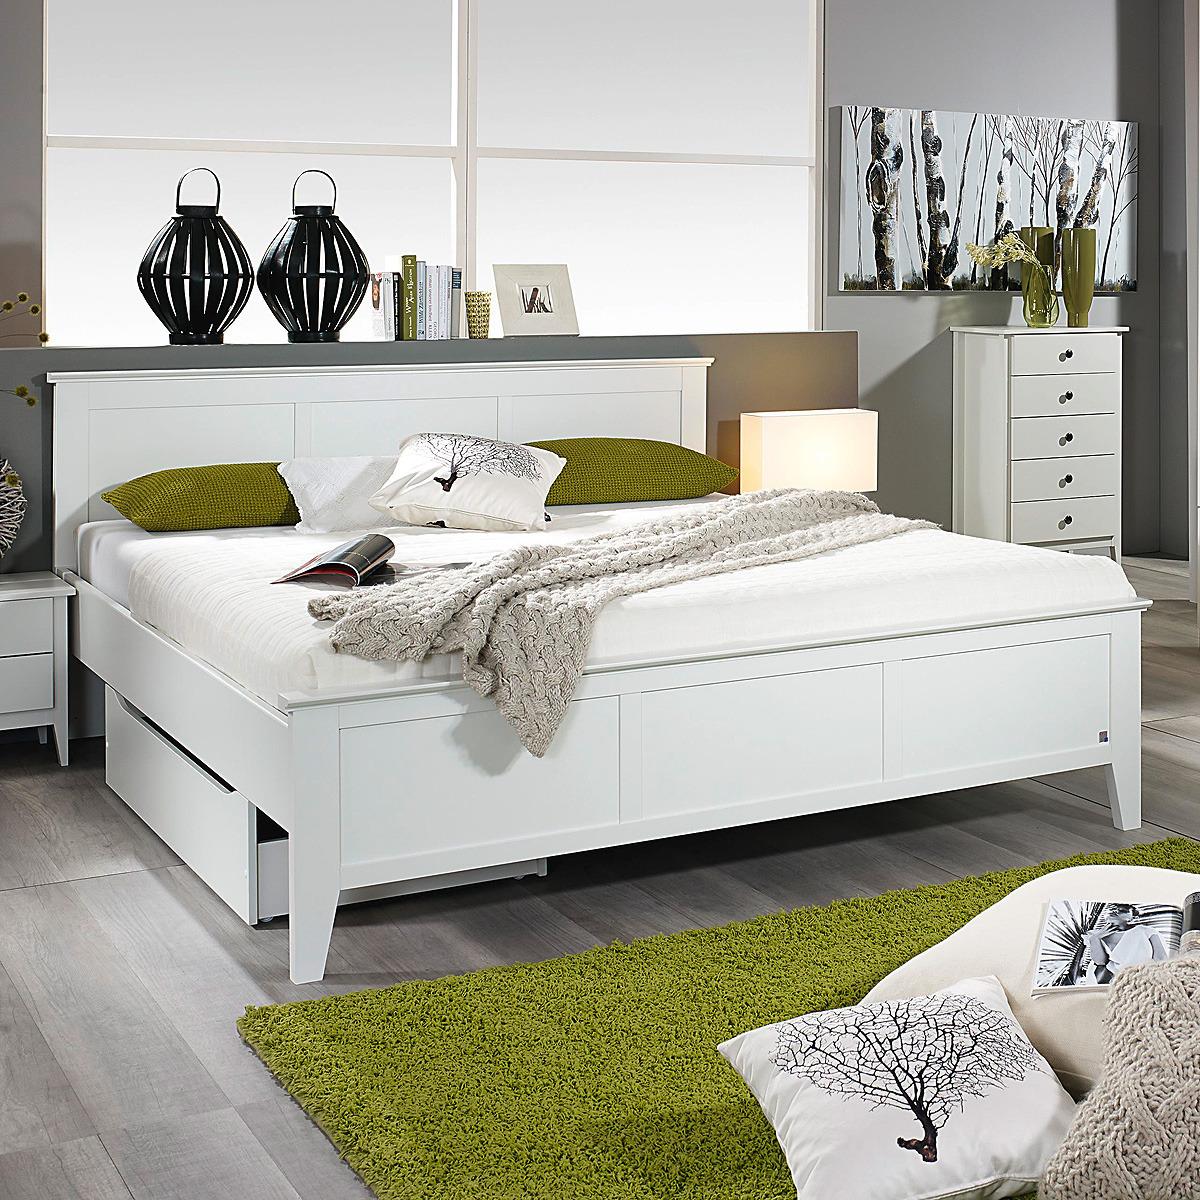 schrankwand akazie weiss braun beste bildideen zu hause. Black Bedroom Furniture Sets. Home Design Ideas